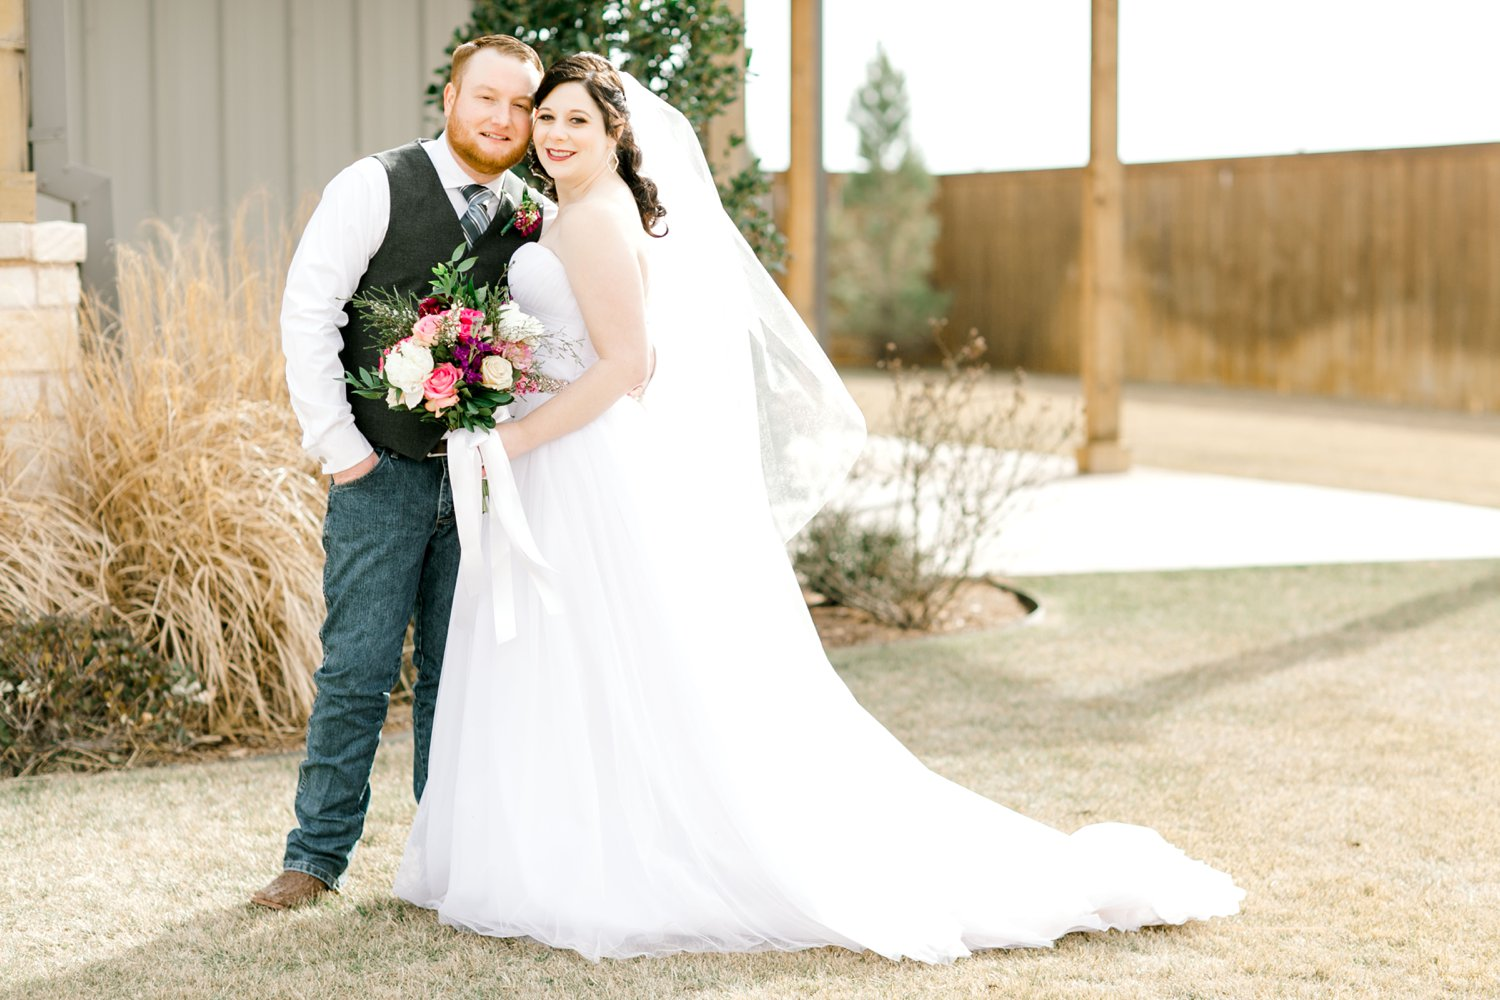 Autumn-Oaks-Events-Morgan-Andy-Lane-Wedding-Lubbock-Photography__0043.jpg